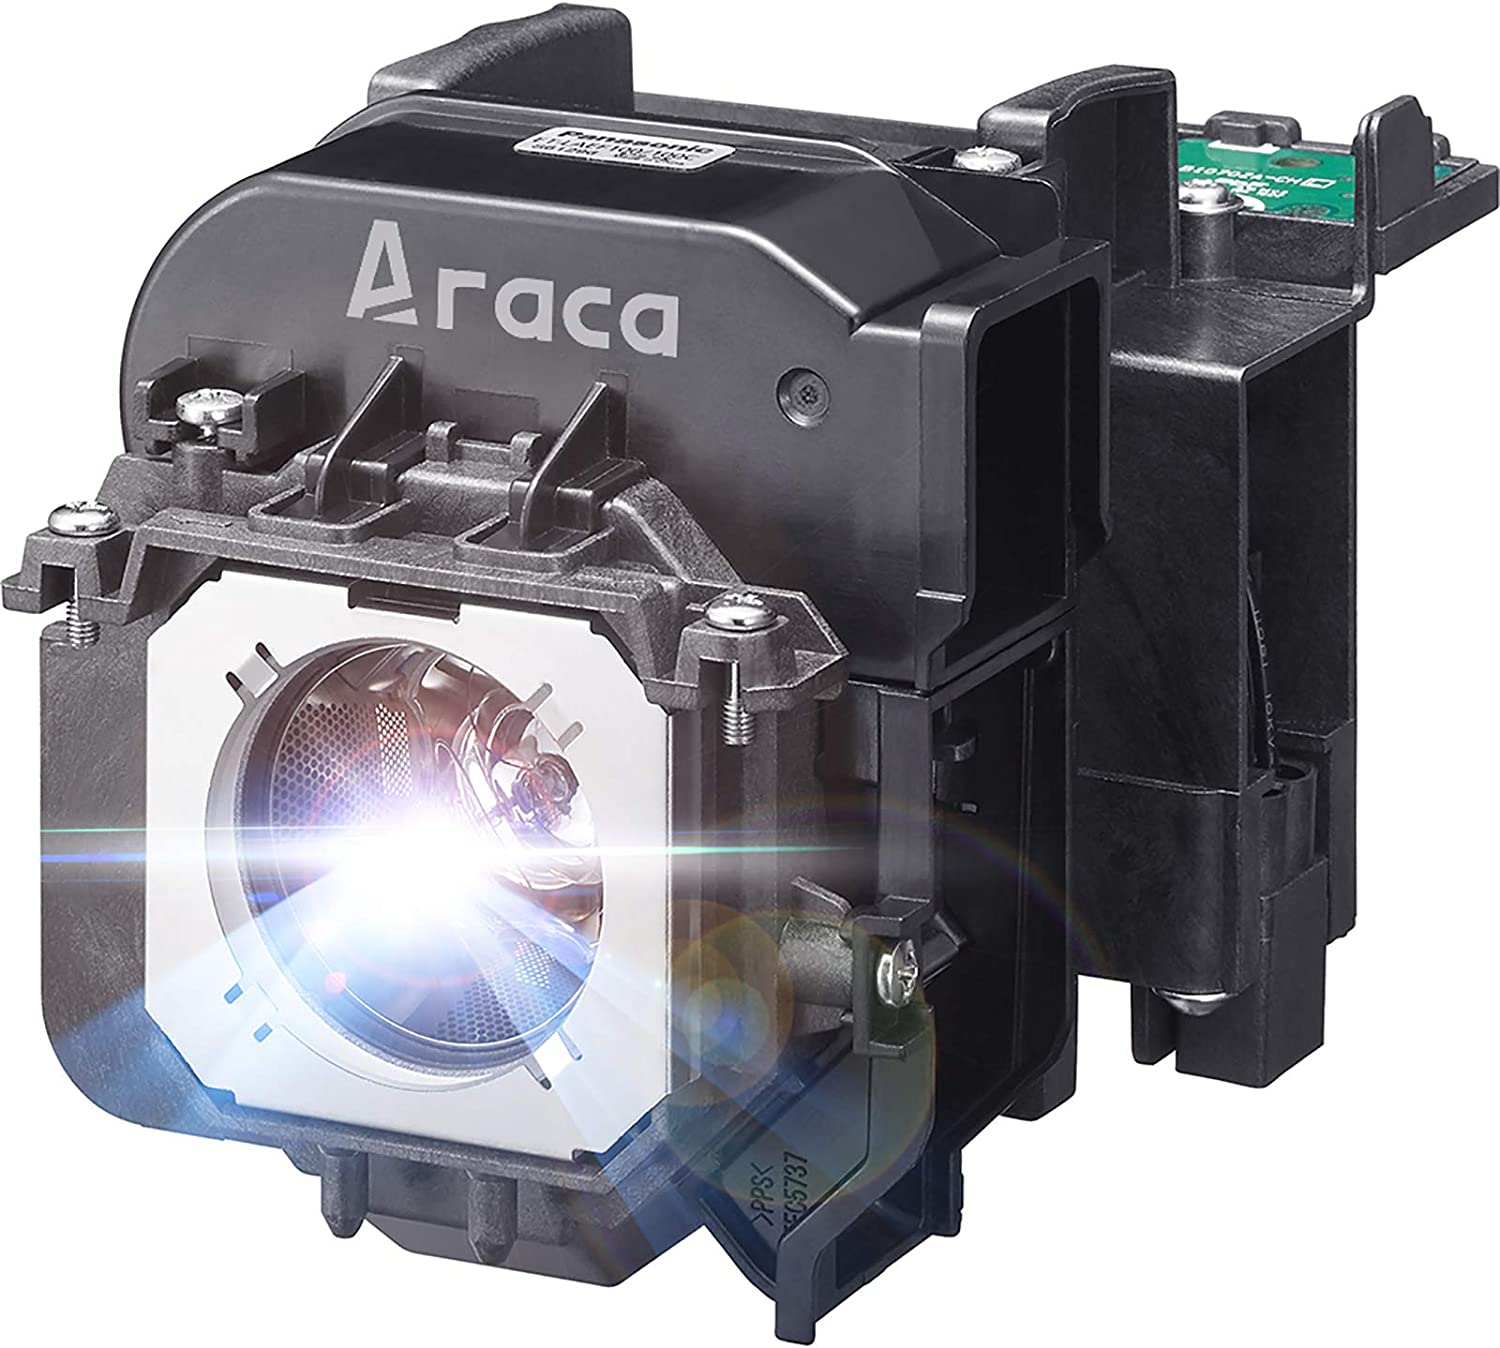 Araca ET-LAEF100 Projector Lamp with Housing for Panasonic PT-FW530 PT-EZ590 PT-EZ590U PT-EZ590L PT-EW650U PT-EW650 PT-EW650L PT-EX620 PT-EX520 PT-EW550 PT-FZ570 PT-FX500 Replacement Projector Lamp